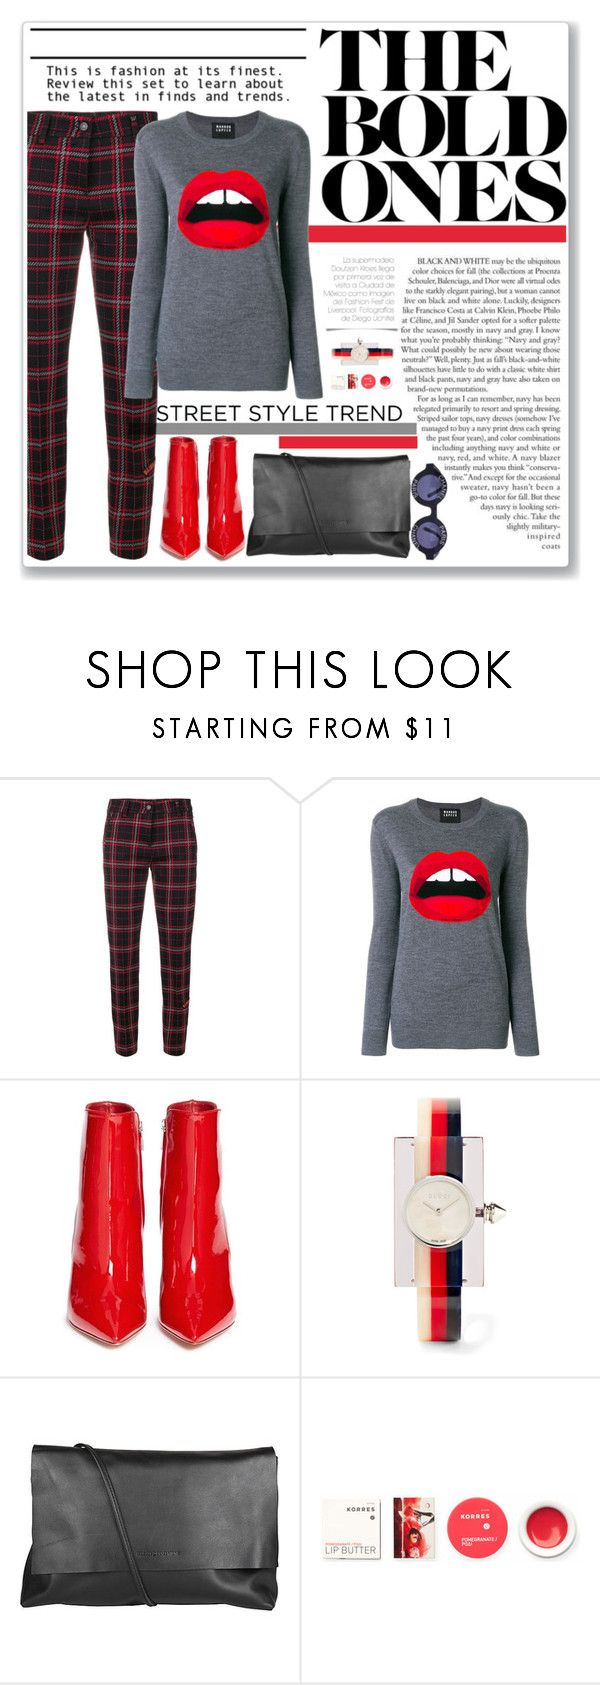 """Plaid Friday"" by crblackflag ❤ liked on Polyvore featuring Cambio, Markus Lupfer, Gianvito Rossi, Gucci, Arlington Milne, Korres, Chanel, plaid and redboots"